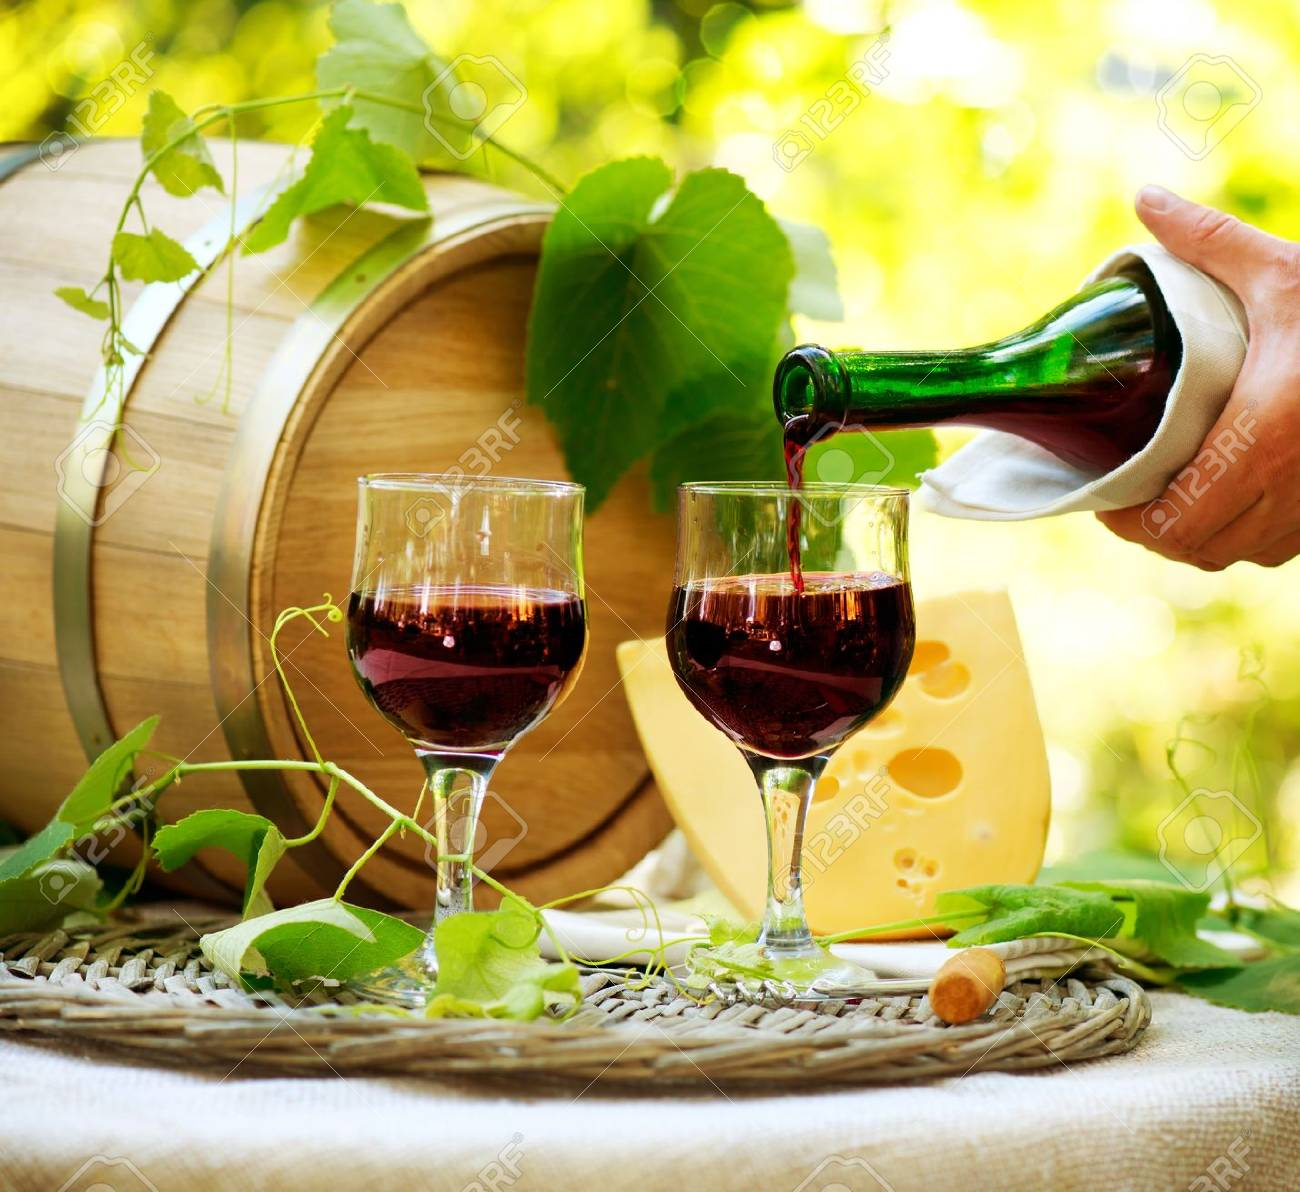 Red Wine and Cheese Romantic Lunch Outdoor - 17508988